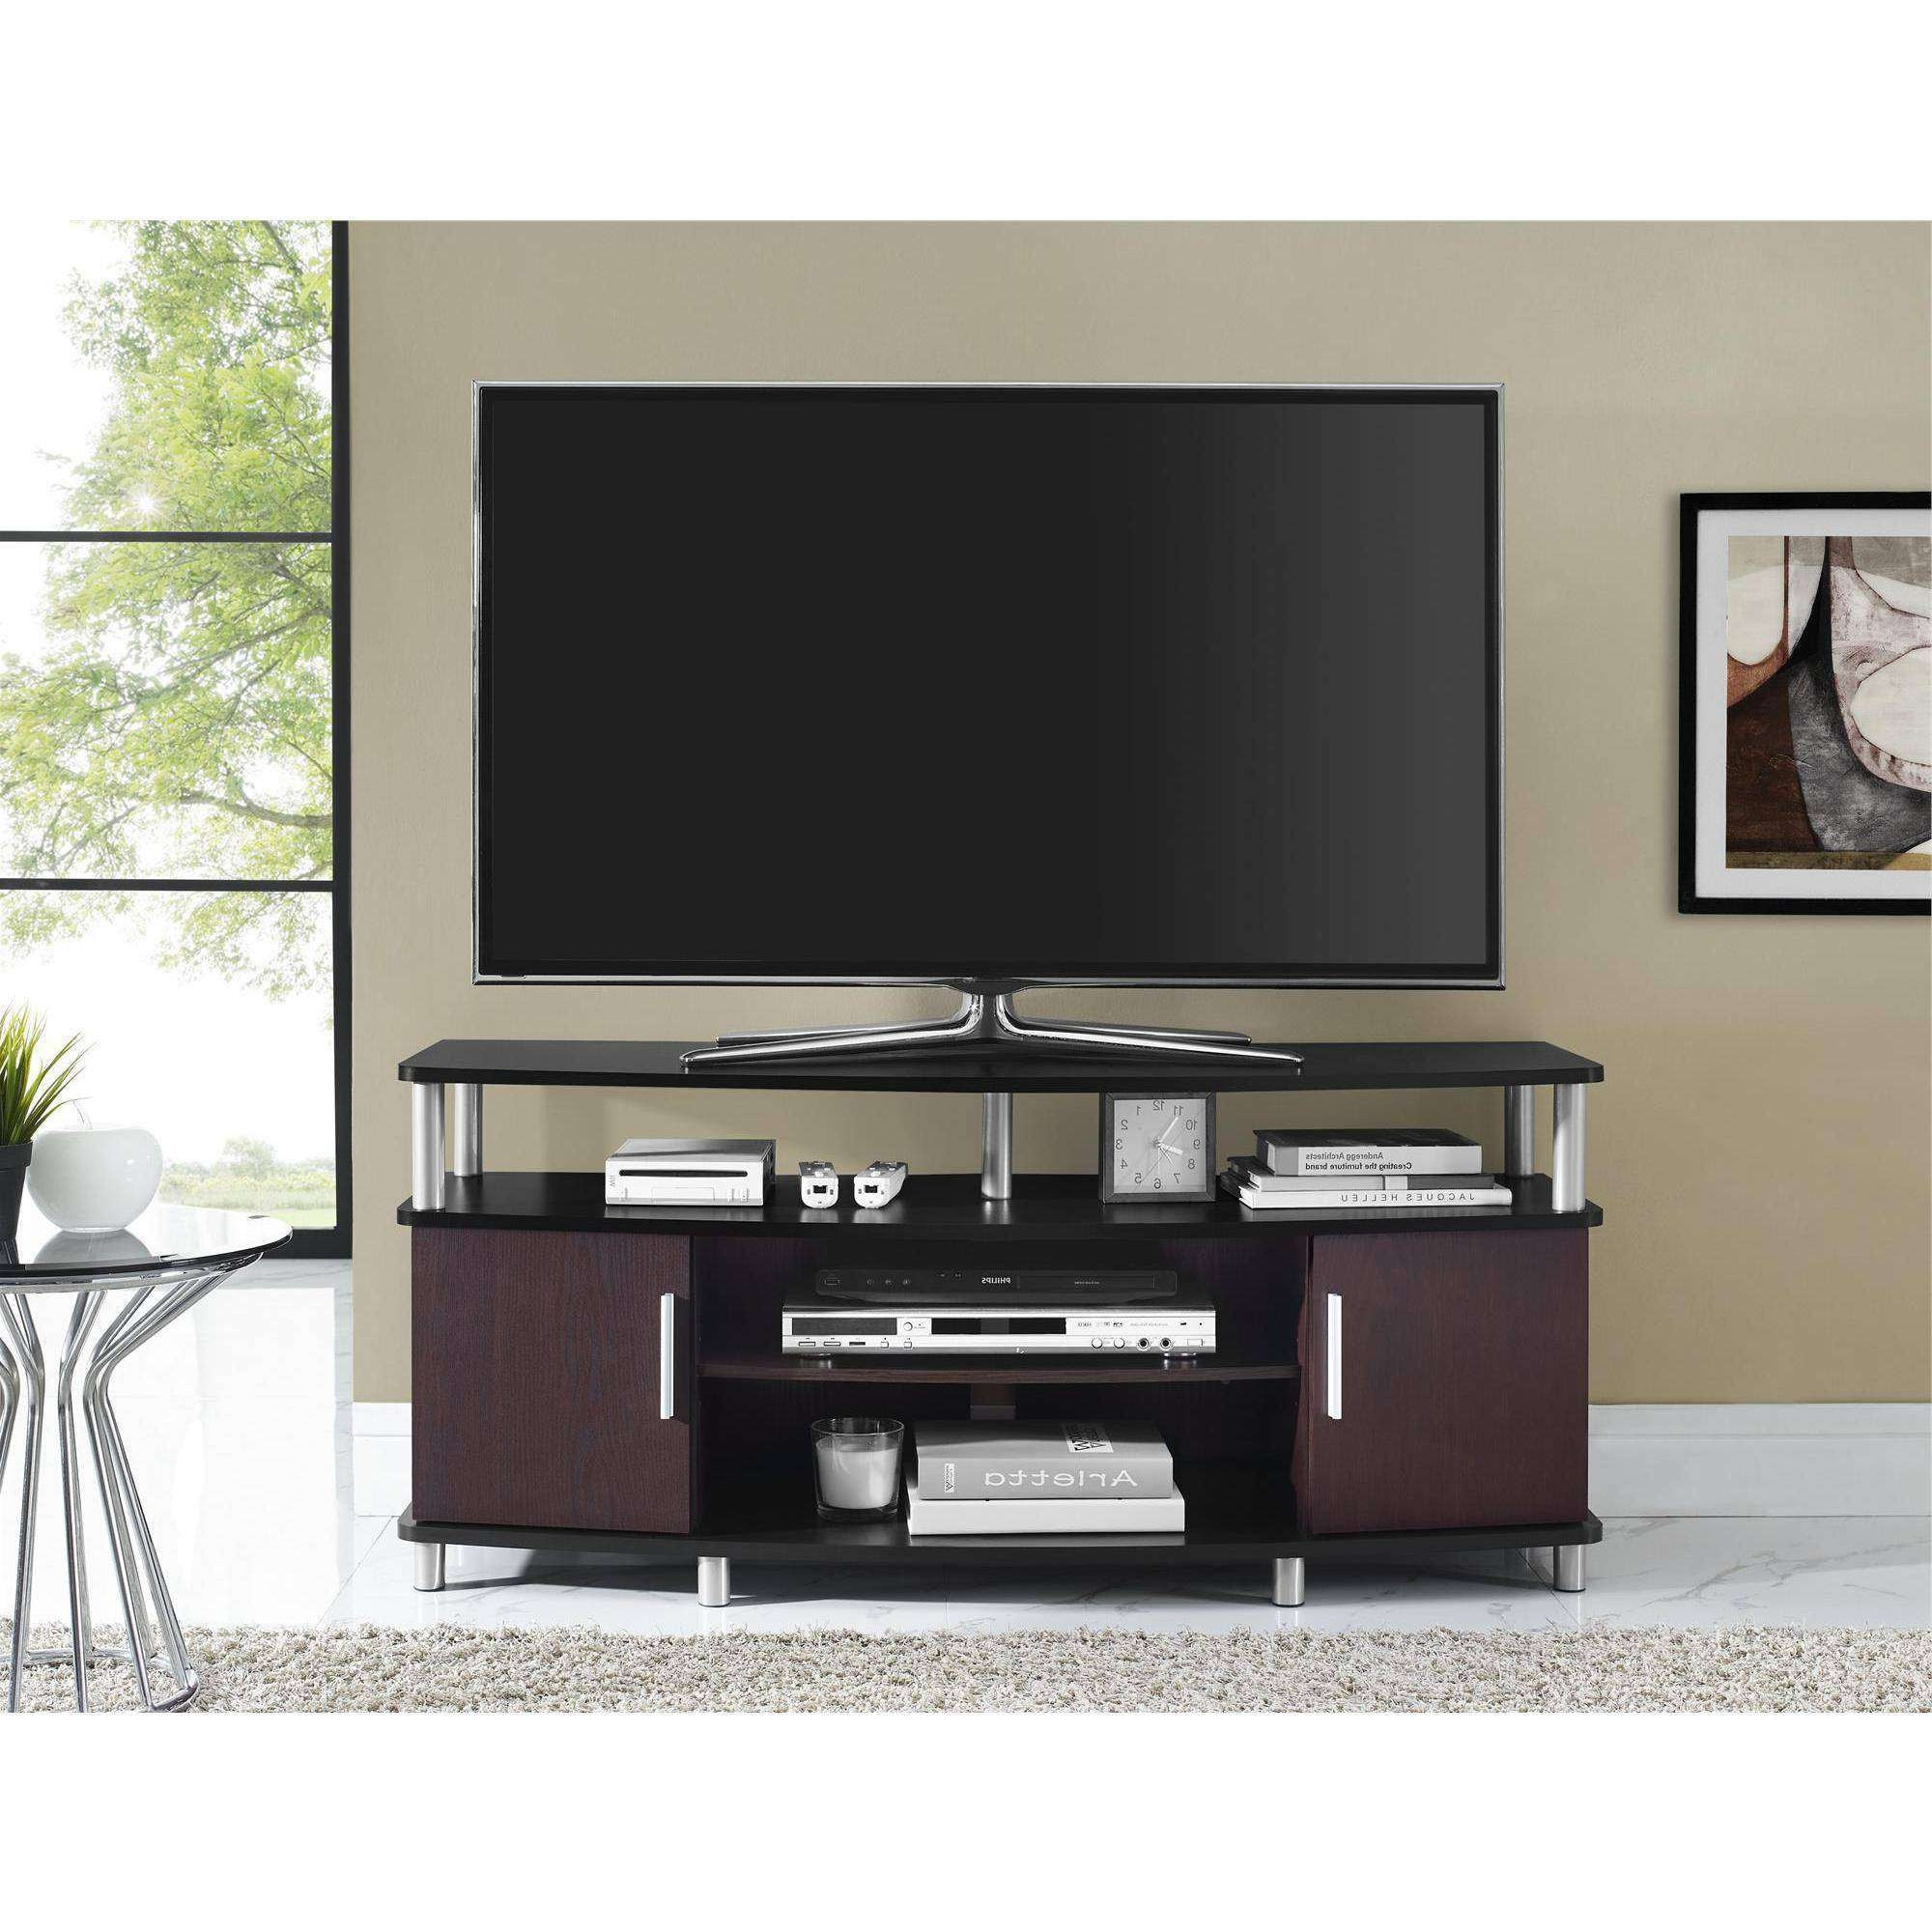 Fancy Carson Tv Stand For Tvs Up To 50 Multiple Finishes 34 In Regarding Fancy Tv Stands (View 12 of 15)